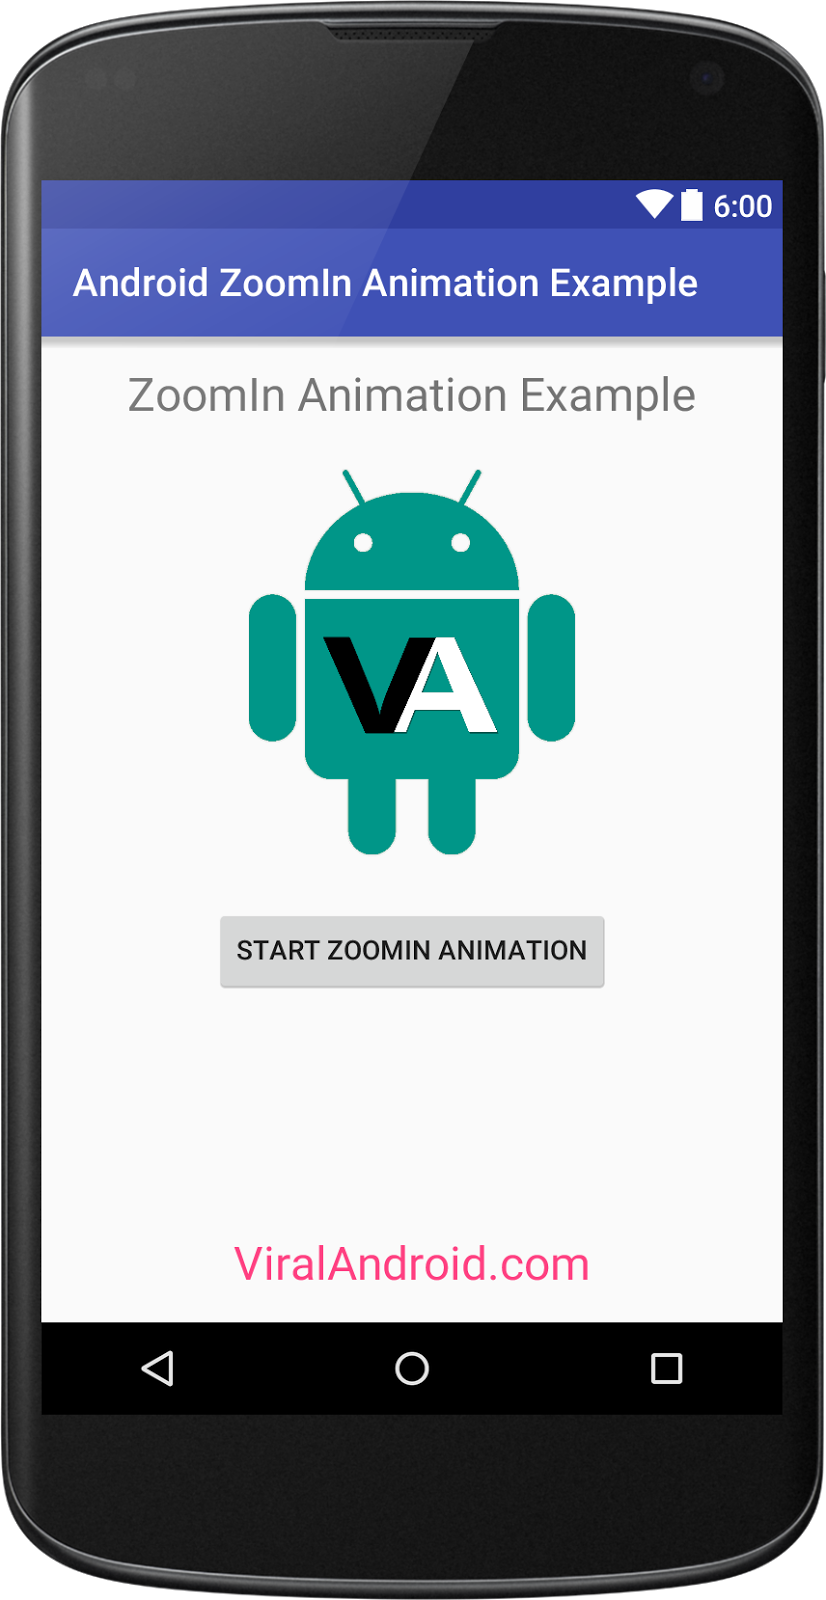 Zoom In Animation Example: How to Implement Zoom In Animation in Android